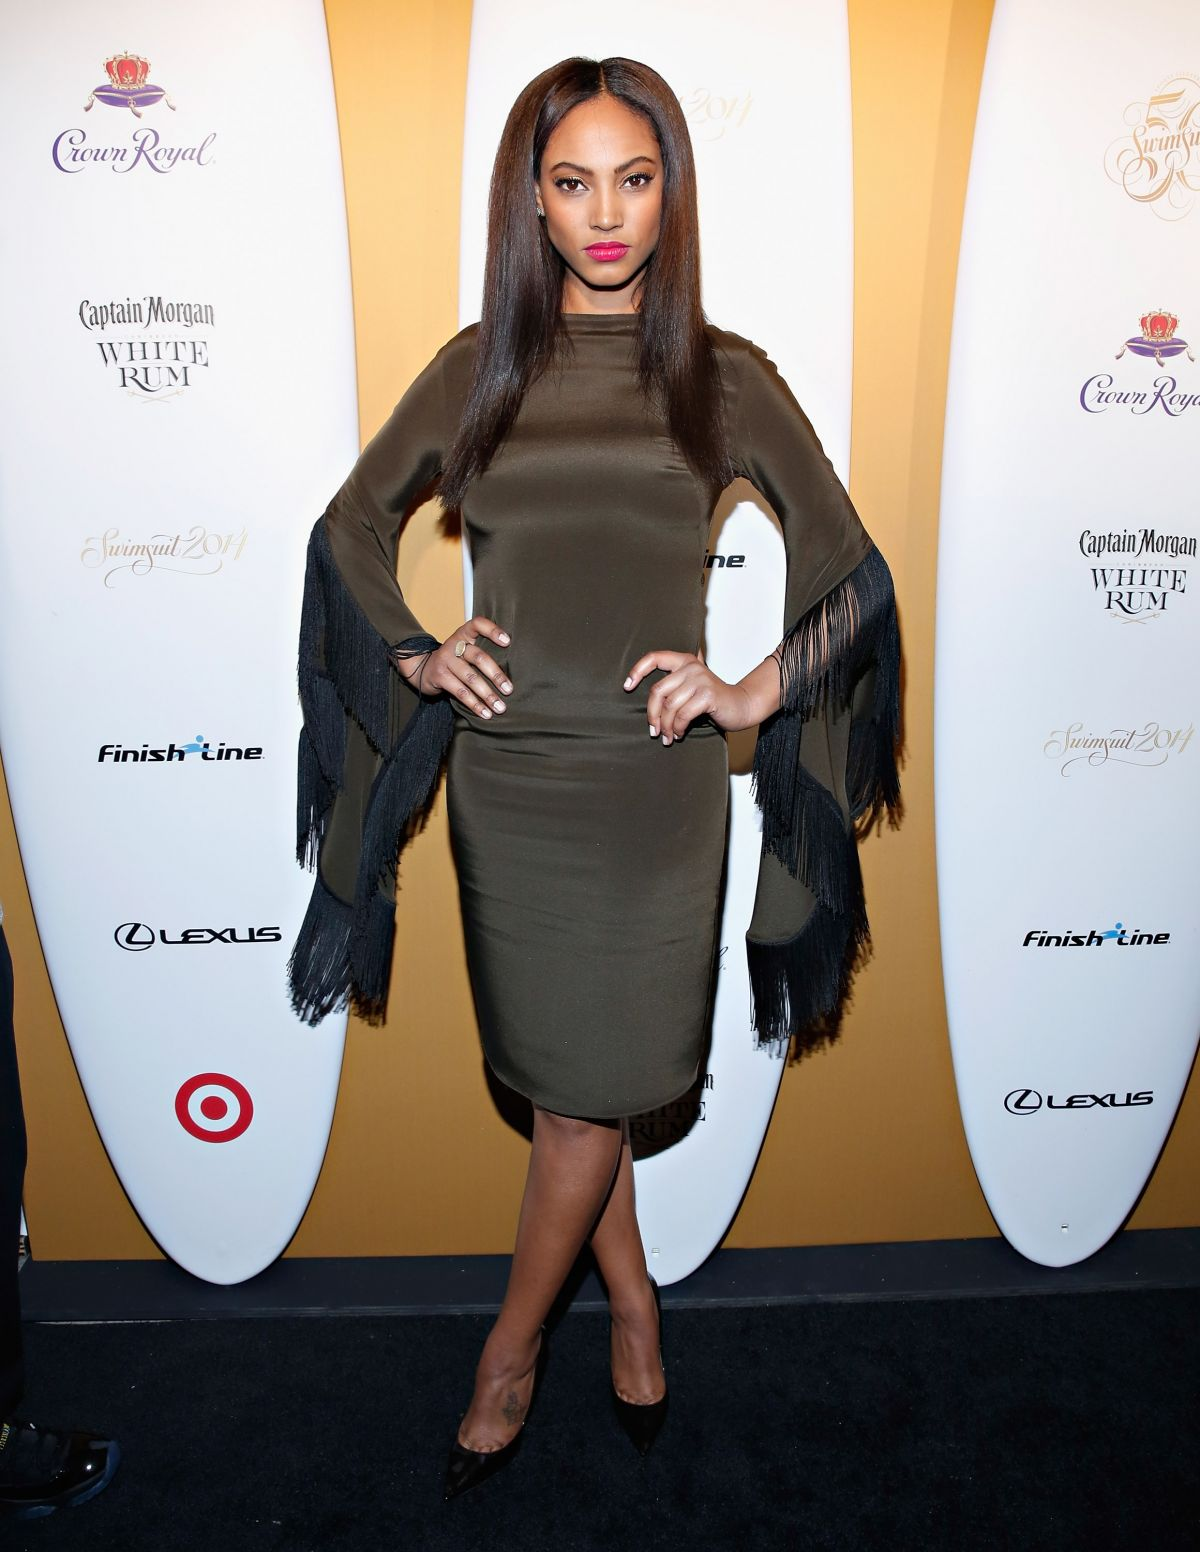 ARIEL MEREDITH at Sports Illustrated Swimsuit 50 Years of Swim Celebration in New York